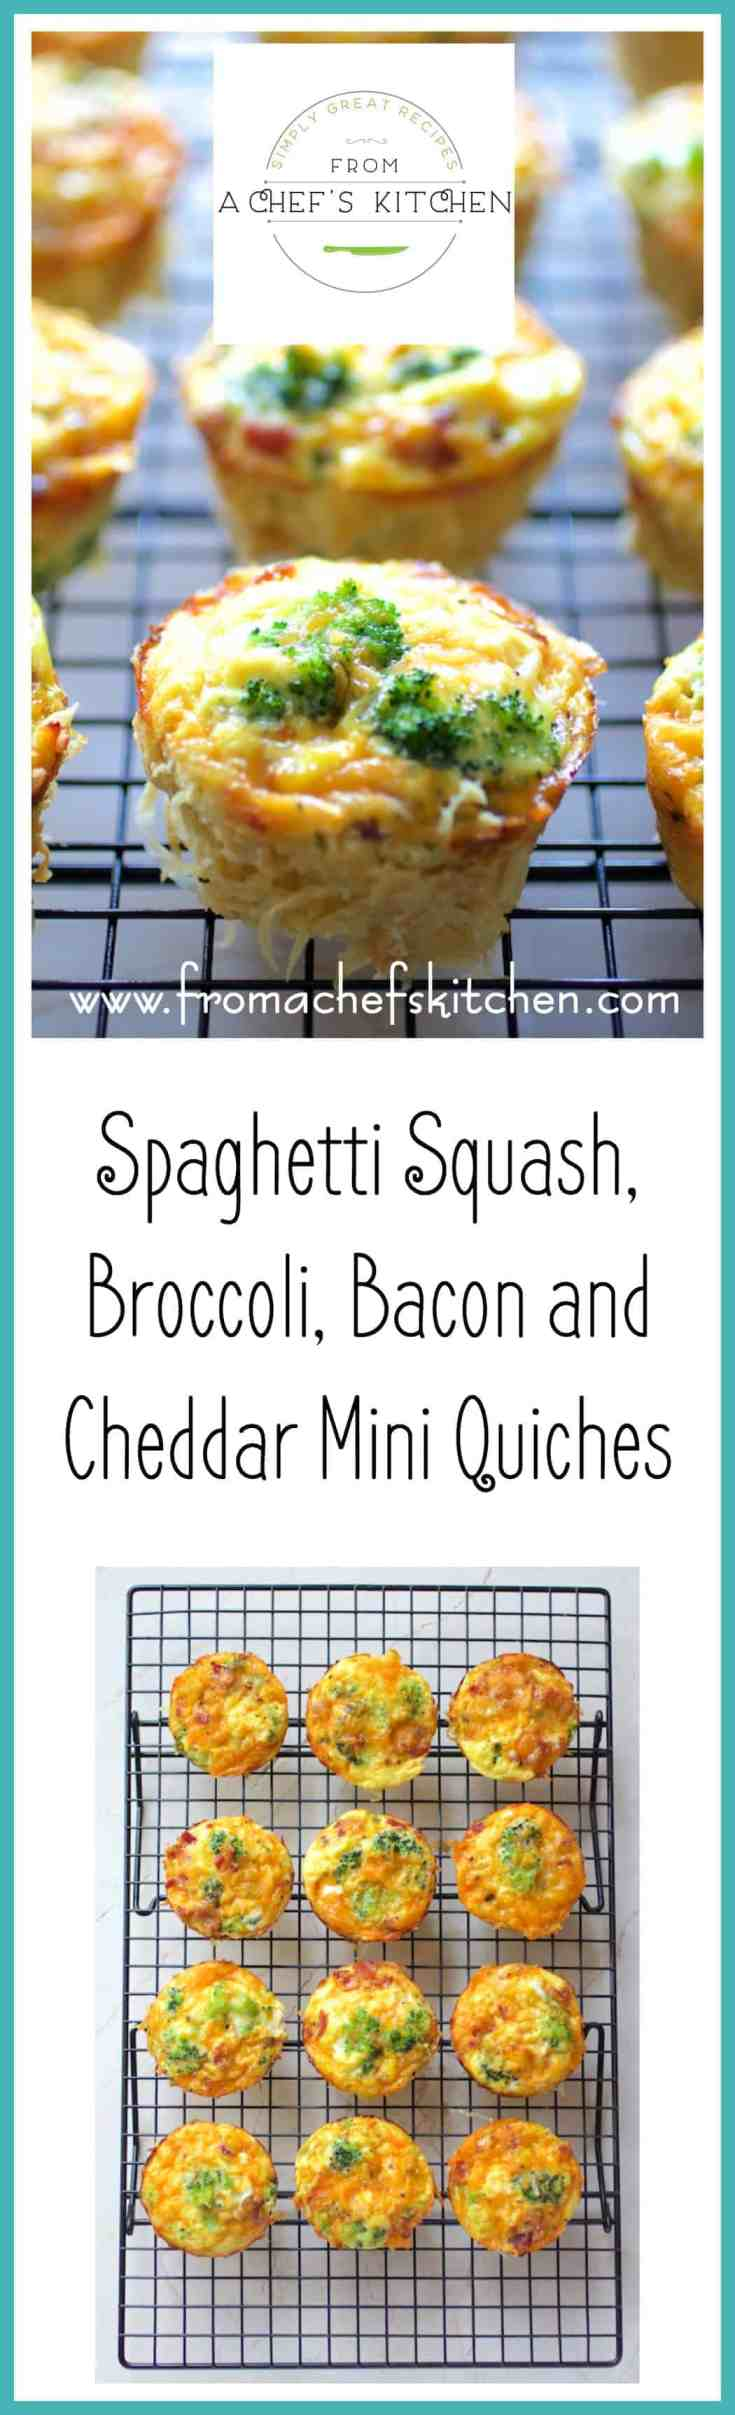 Spaghetti Squash, Broccoli, Bacon and Cheddar Mini Quiches are going to breathe some new life into your breakfast world!  They're low-carb and can be made ahead and reheated as needed.  #spaghettisquash #broccoli #miniquiche #quiche #lowcarb #breakfast